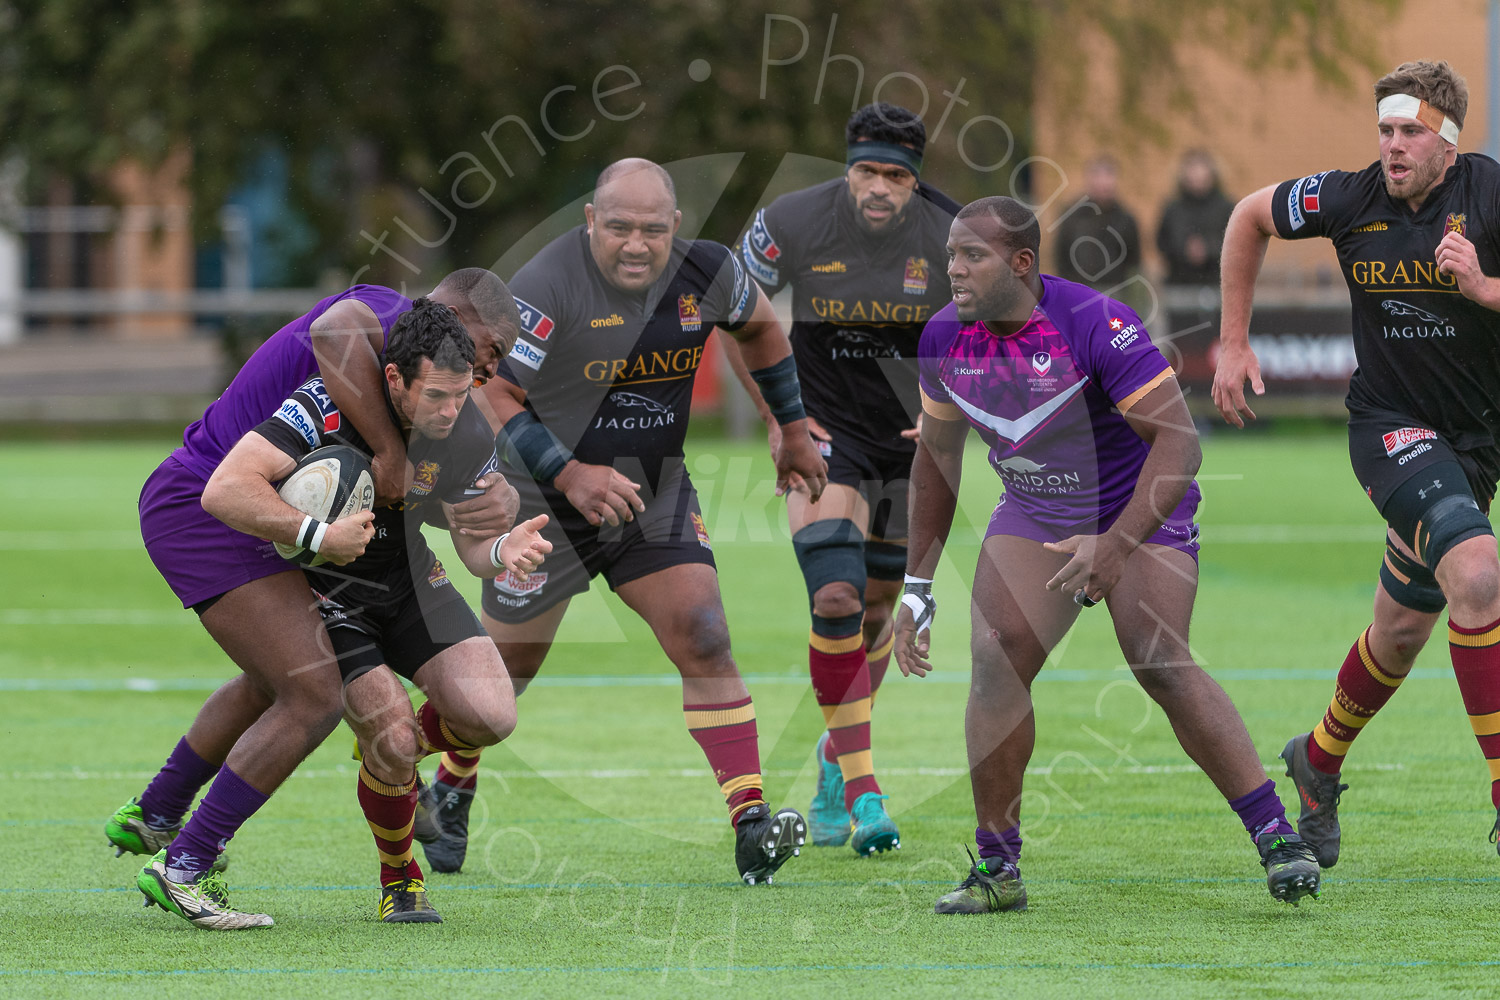 20190427 Loughborough vs Ampthill 1st XV #6008